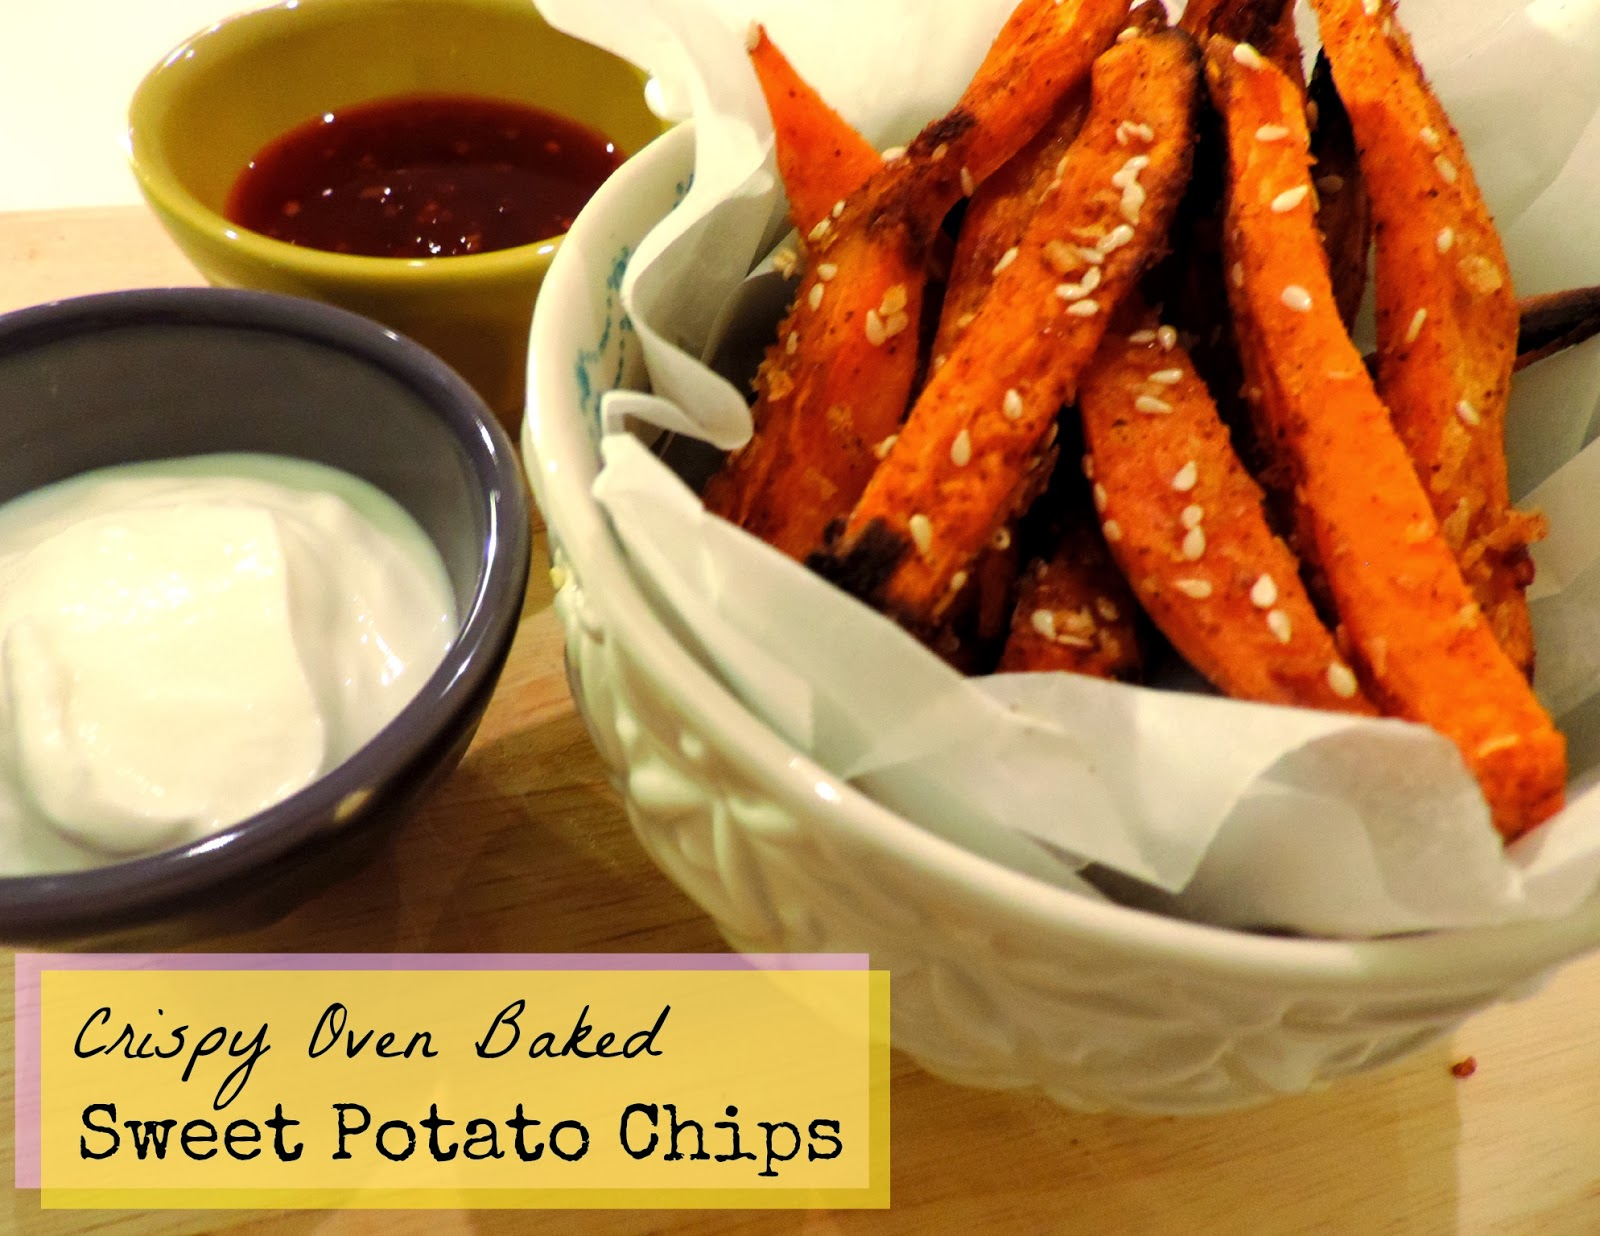 ... Blog | Edinburgh Etiquette: Super Easy Baking - Sweet Potato Chips